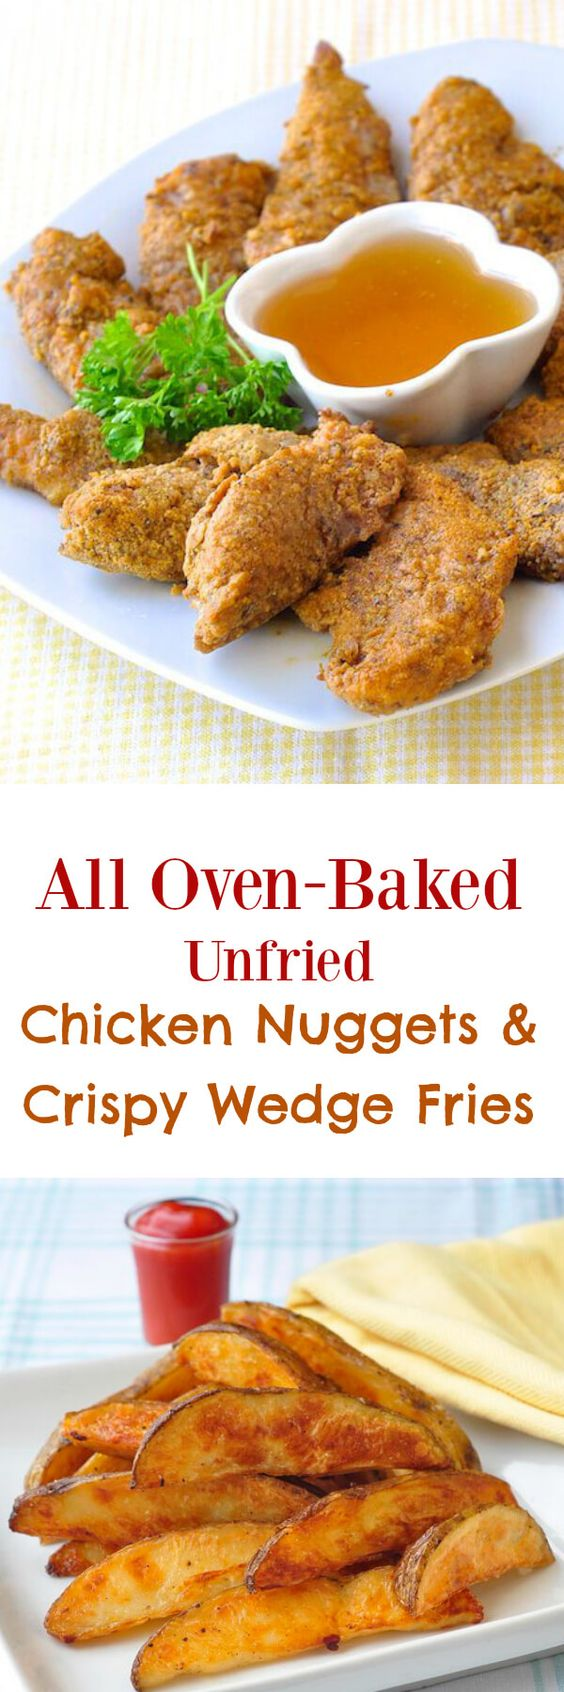 chicken nuggets fried chicken baked chicken nuggets ovens oven baked ...